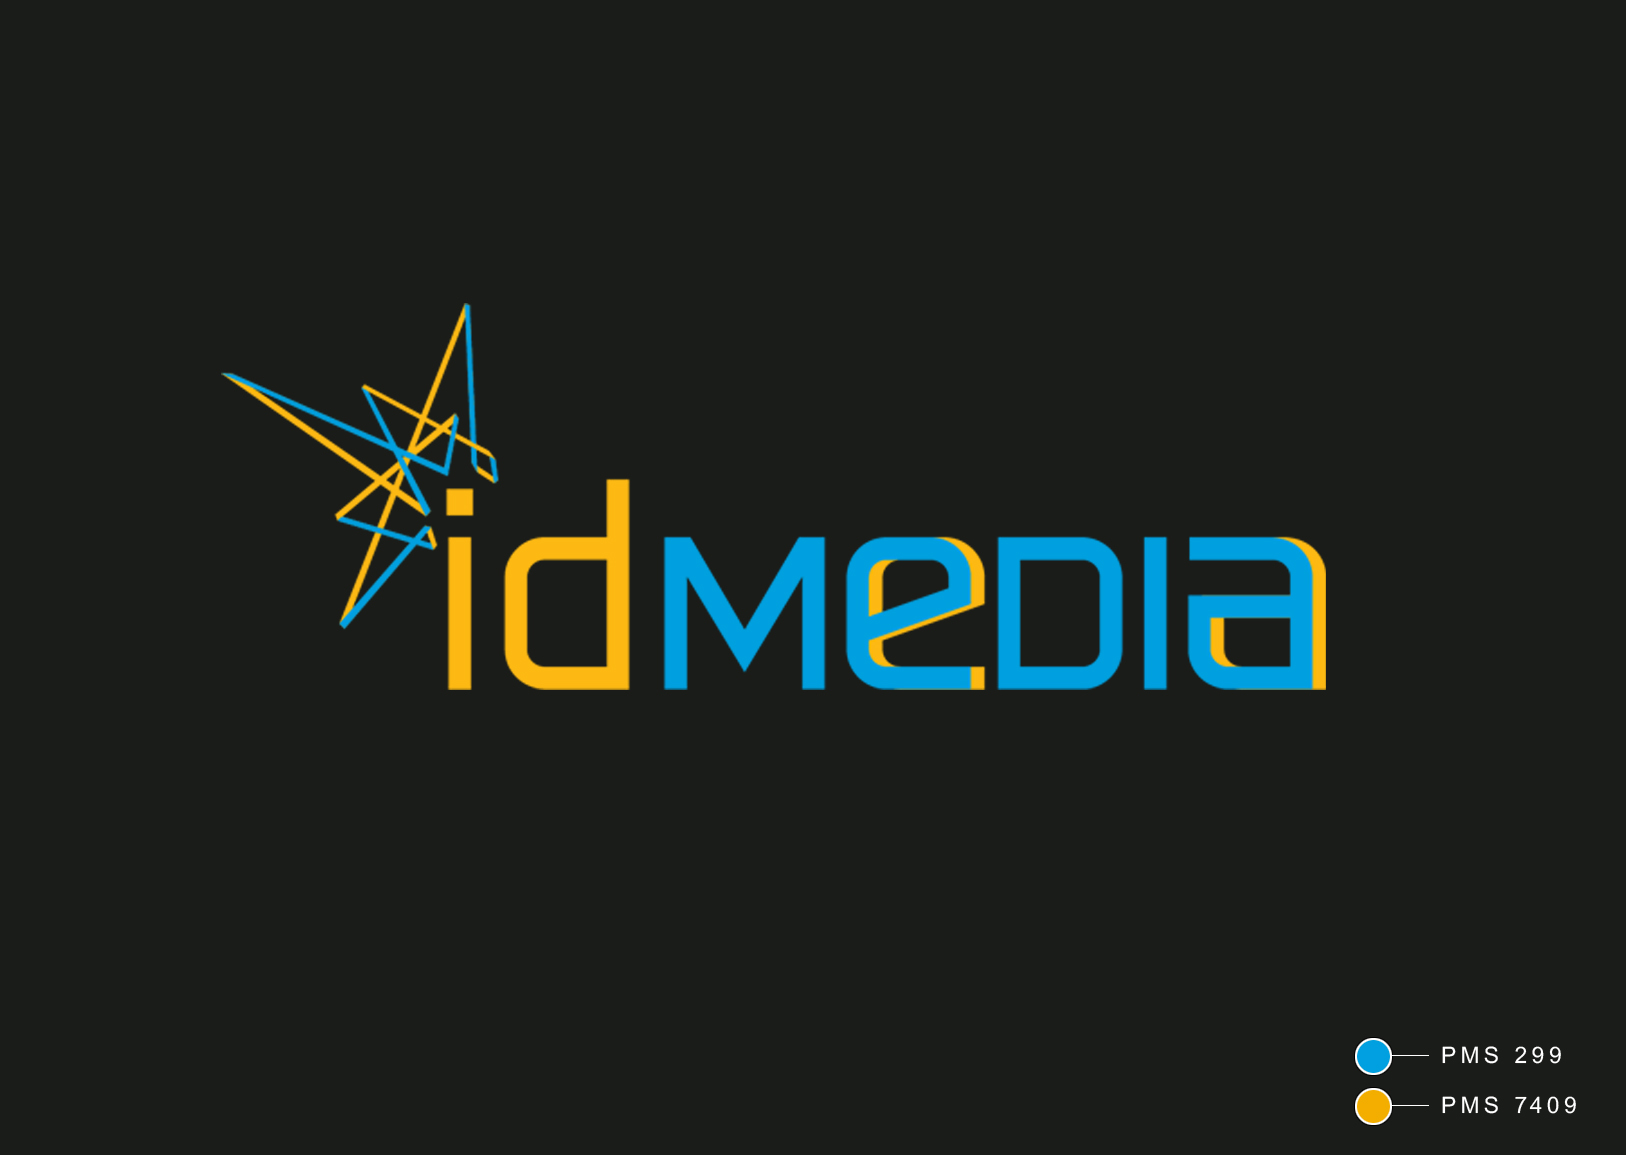 A leading Asian Digital Marketing Agency Brand based in Hong Kong and office in South Korea :: Identity Revamp & New Business Card Design :: main, first choice, logo on black background, PMS 299 and 7409, spark of idea behind all task promoting on media